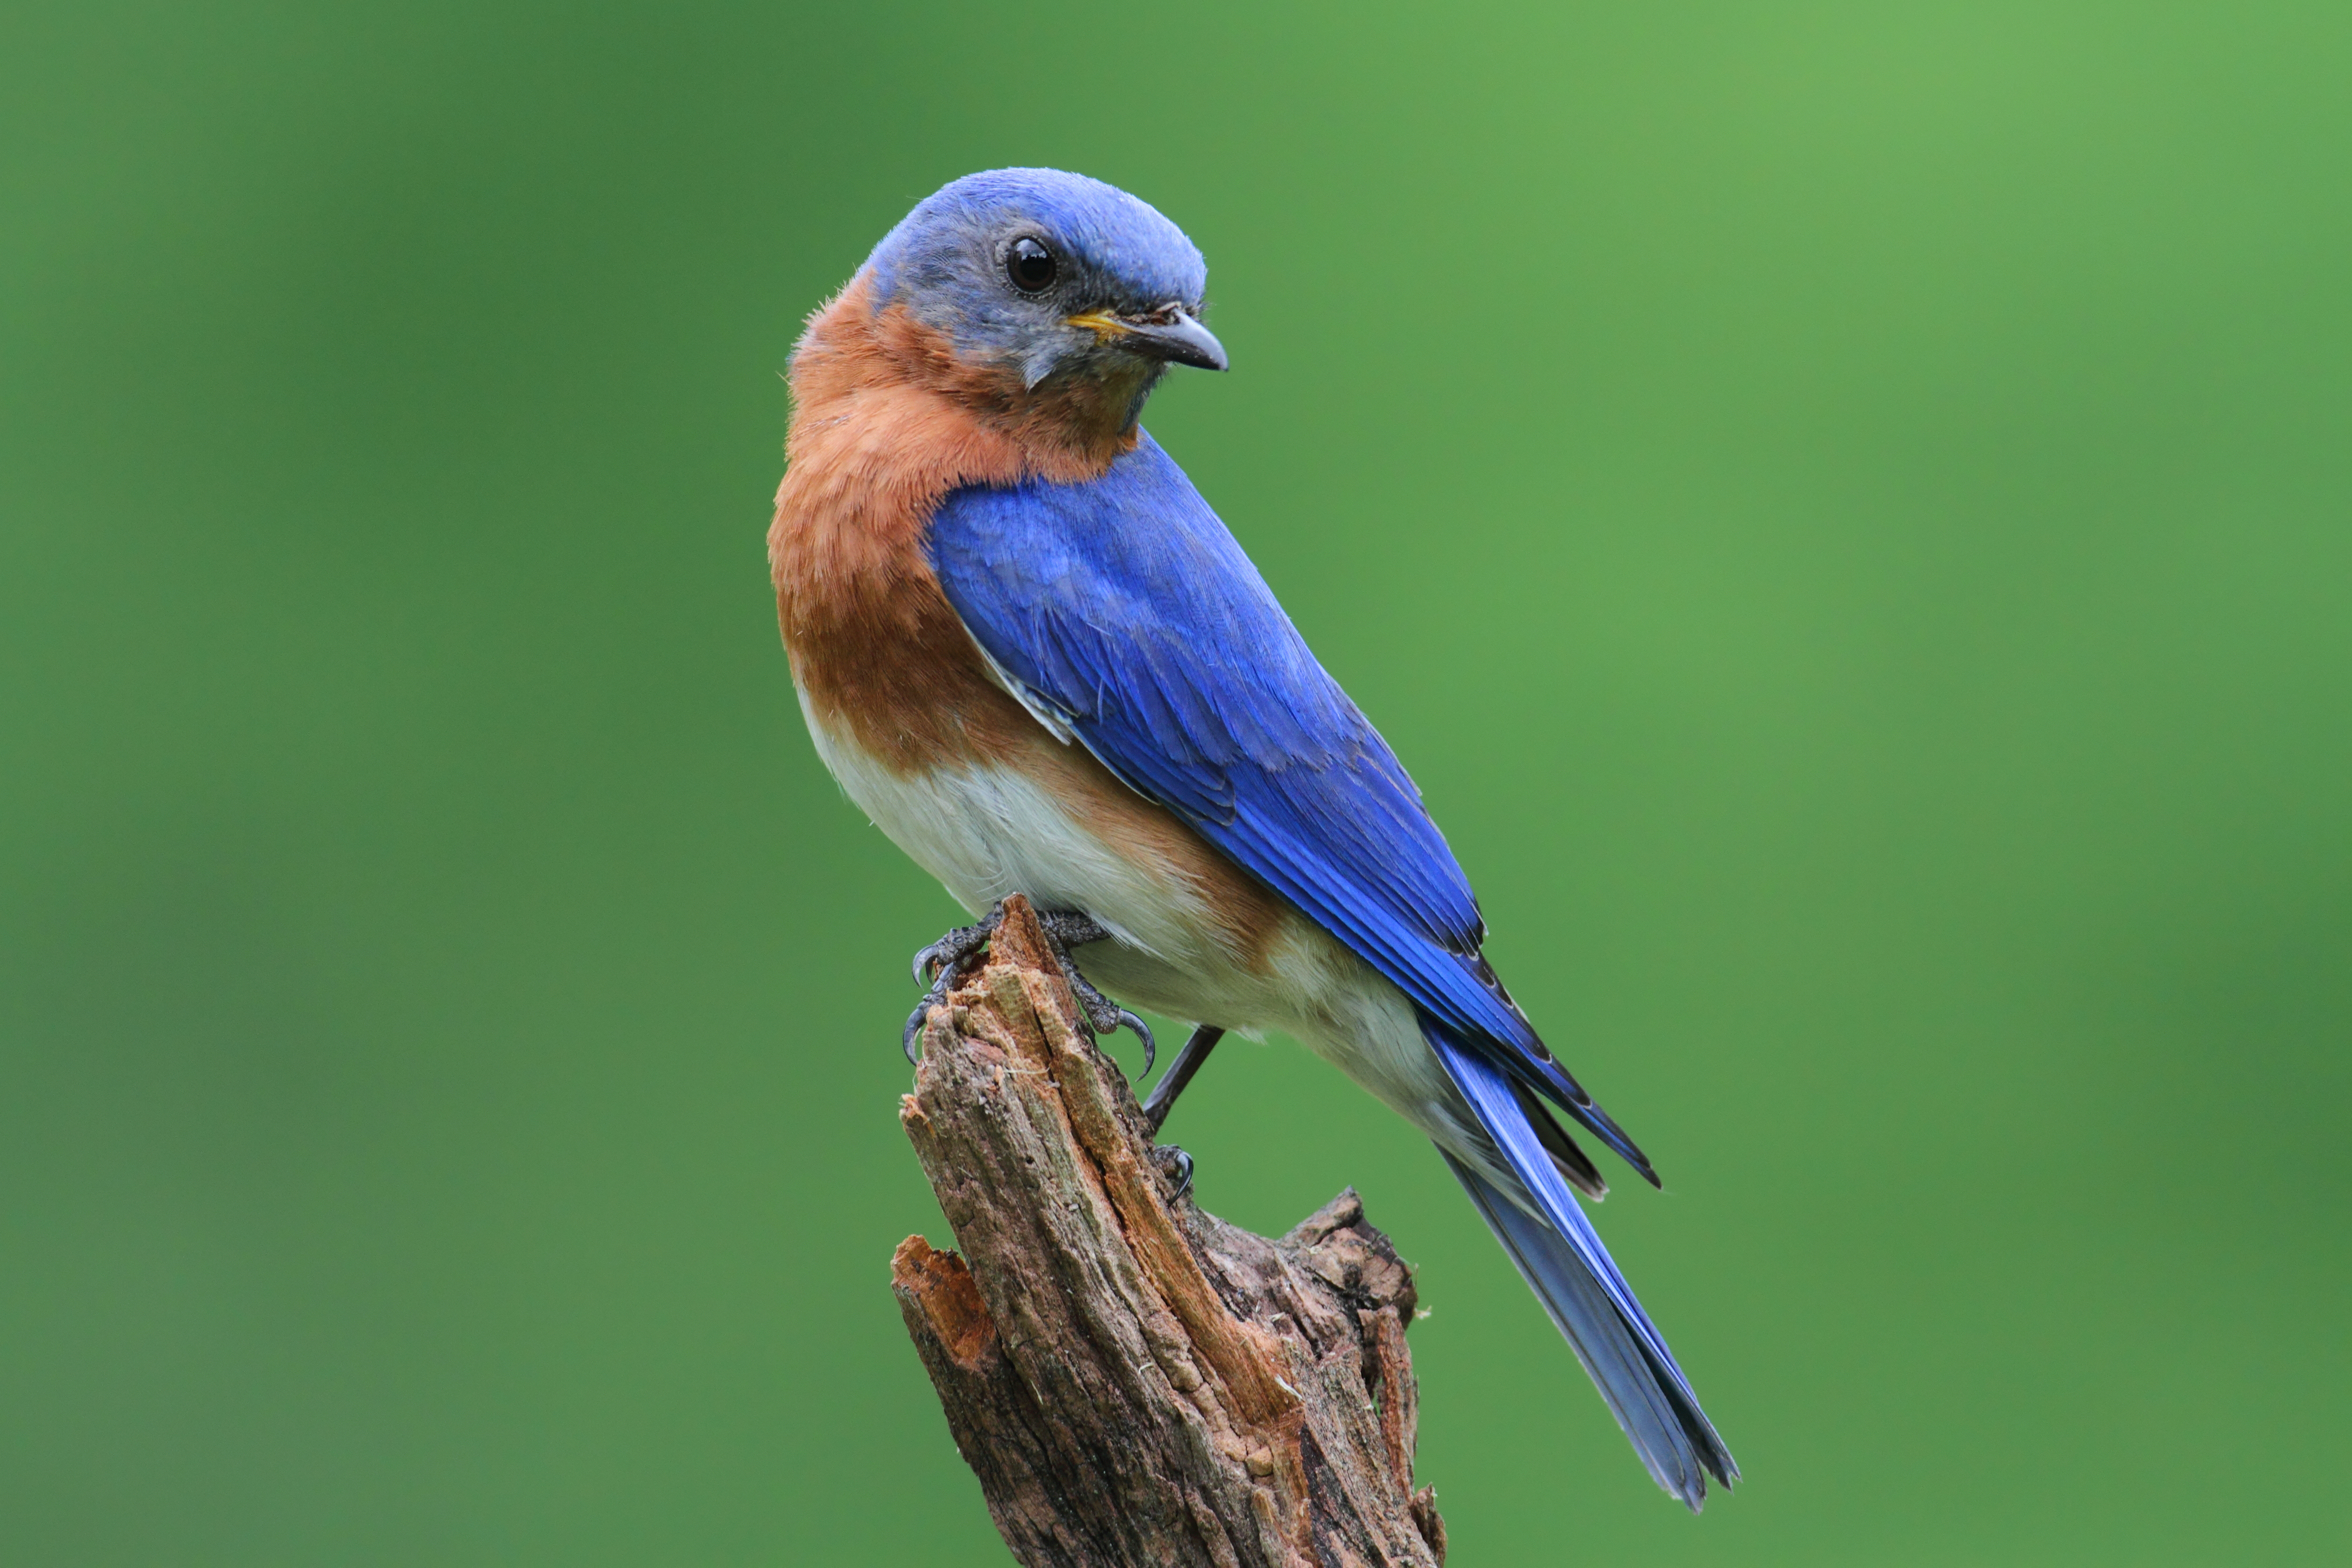 What Direction Should a Bluebird House Face? | Sciencing on free bird feeder designs, bird house designs, free martin bird house plans, free printable bird house plans, free gazebo designs,